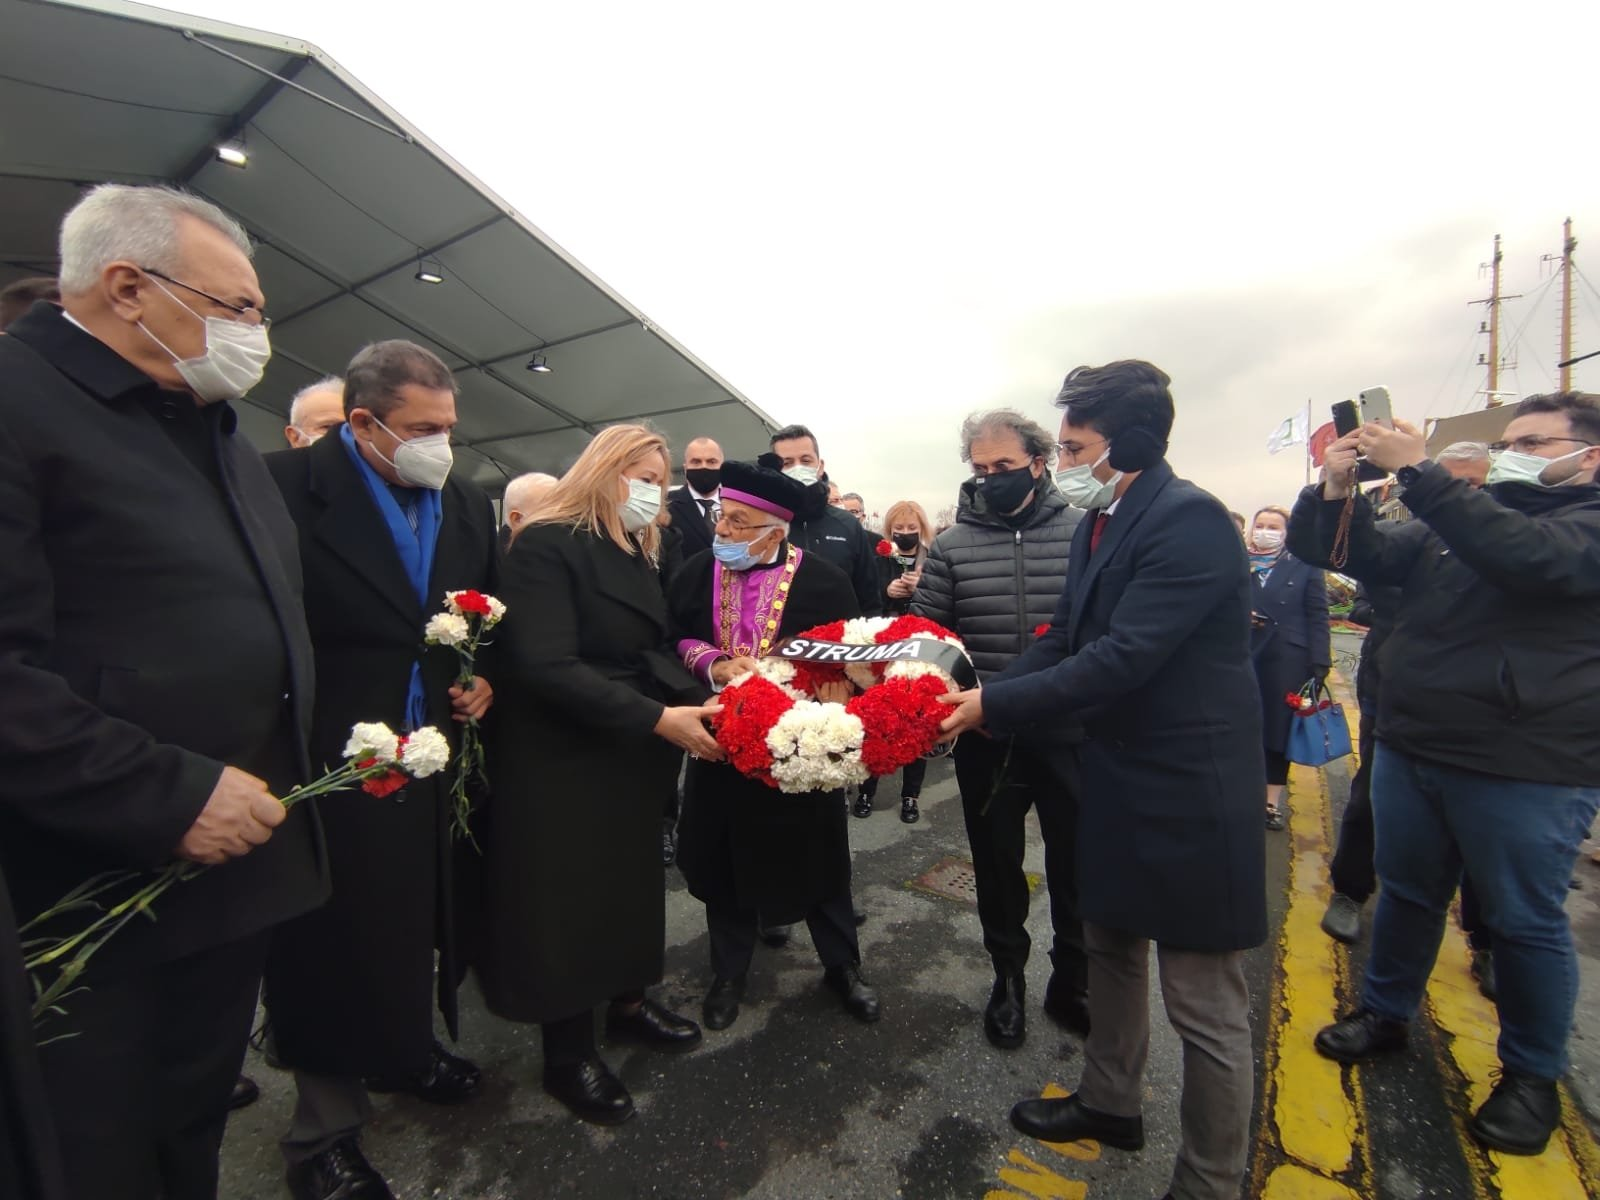 The chief rabbi of the Jewish community, Izak Haleva, and Deputy Governor of Istanbul Özlem Bozkurt Gevrek hold a wreath during the Struma commemoration in the Sarayburnu neighborhood of Istanbul, Turkey, Feb. 24, 2021. (DHA Photo)